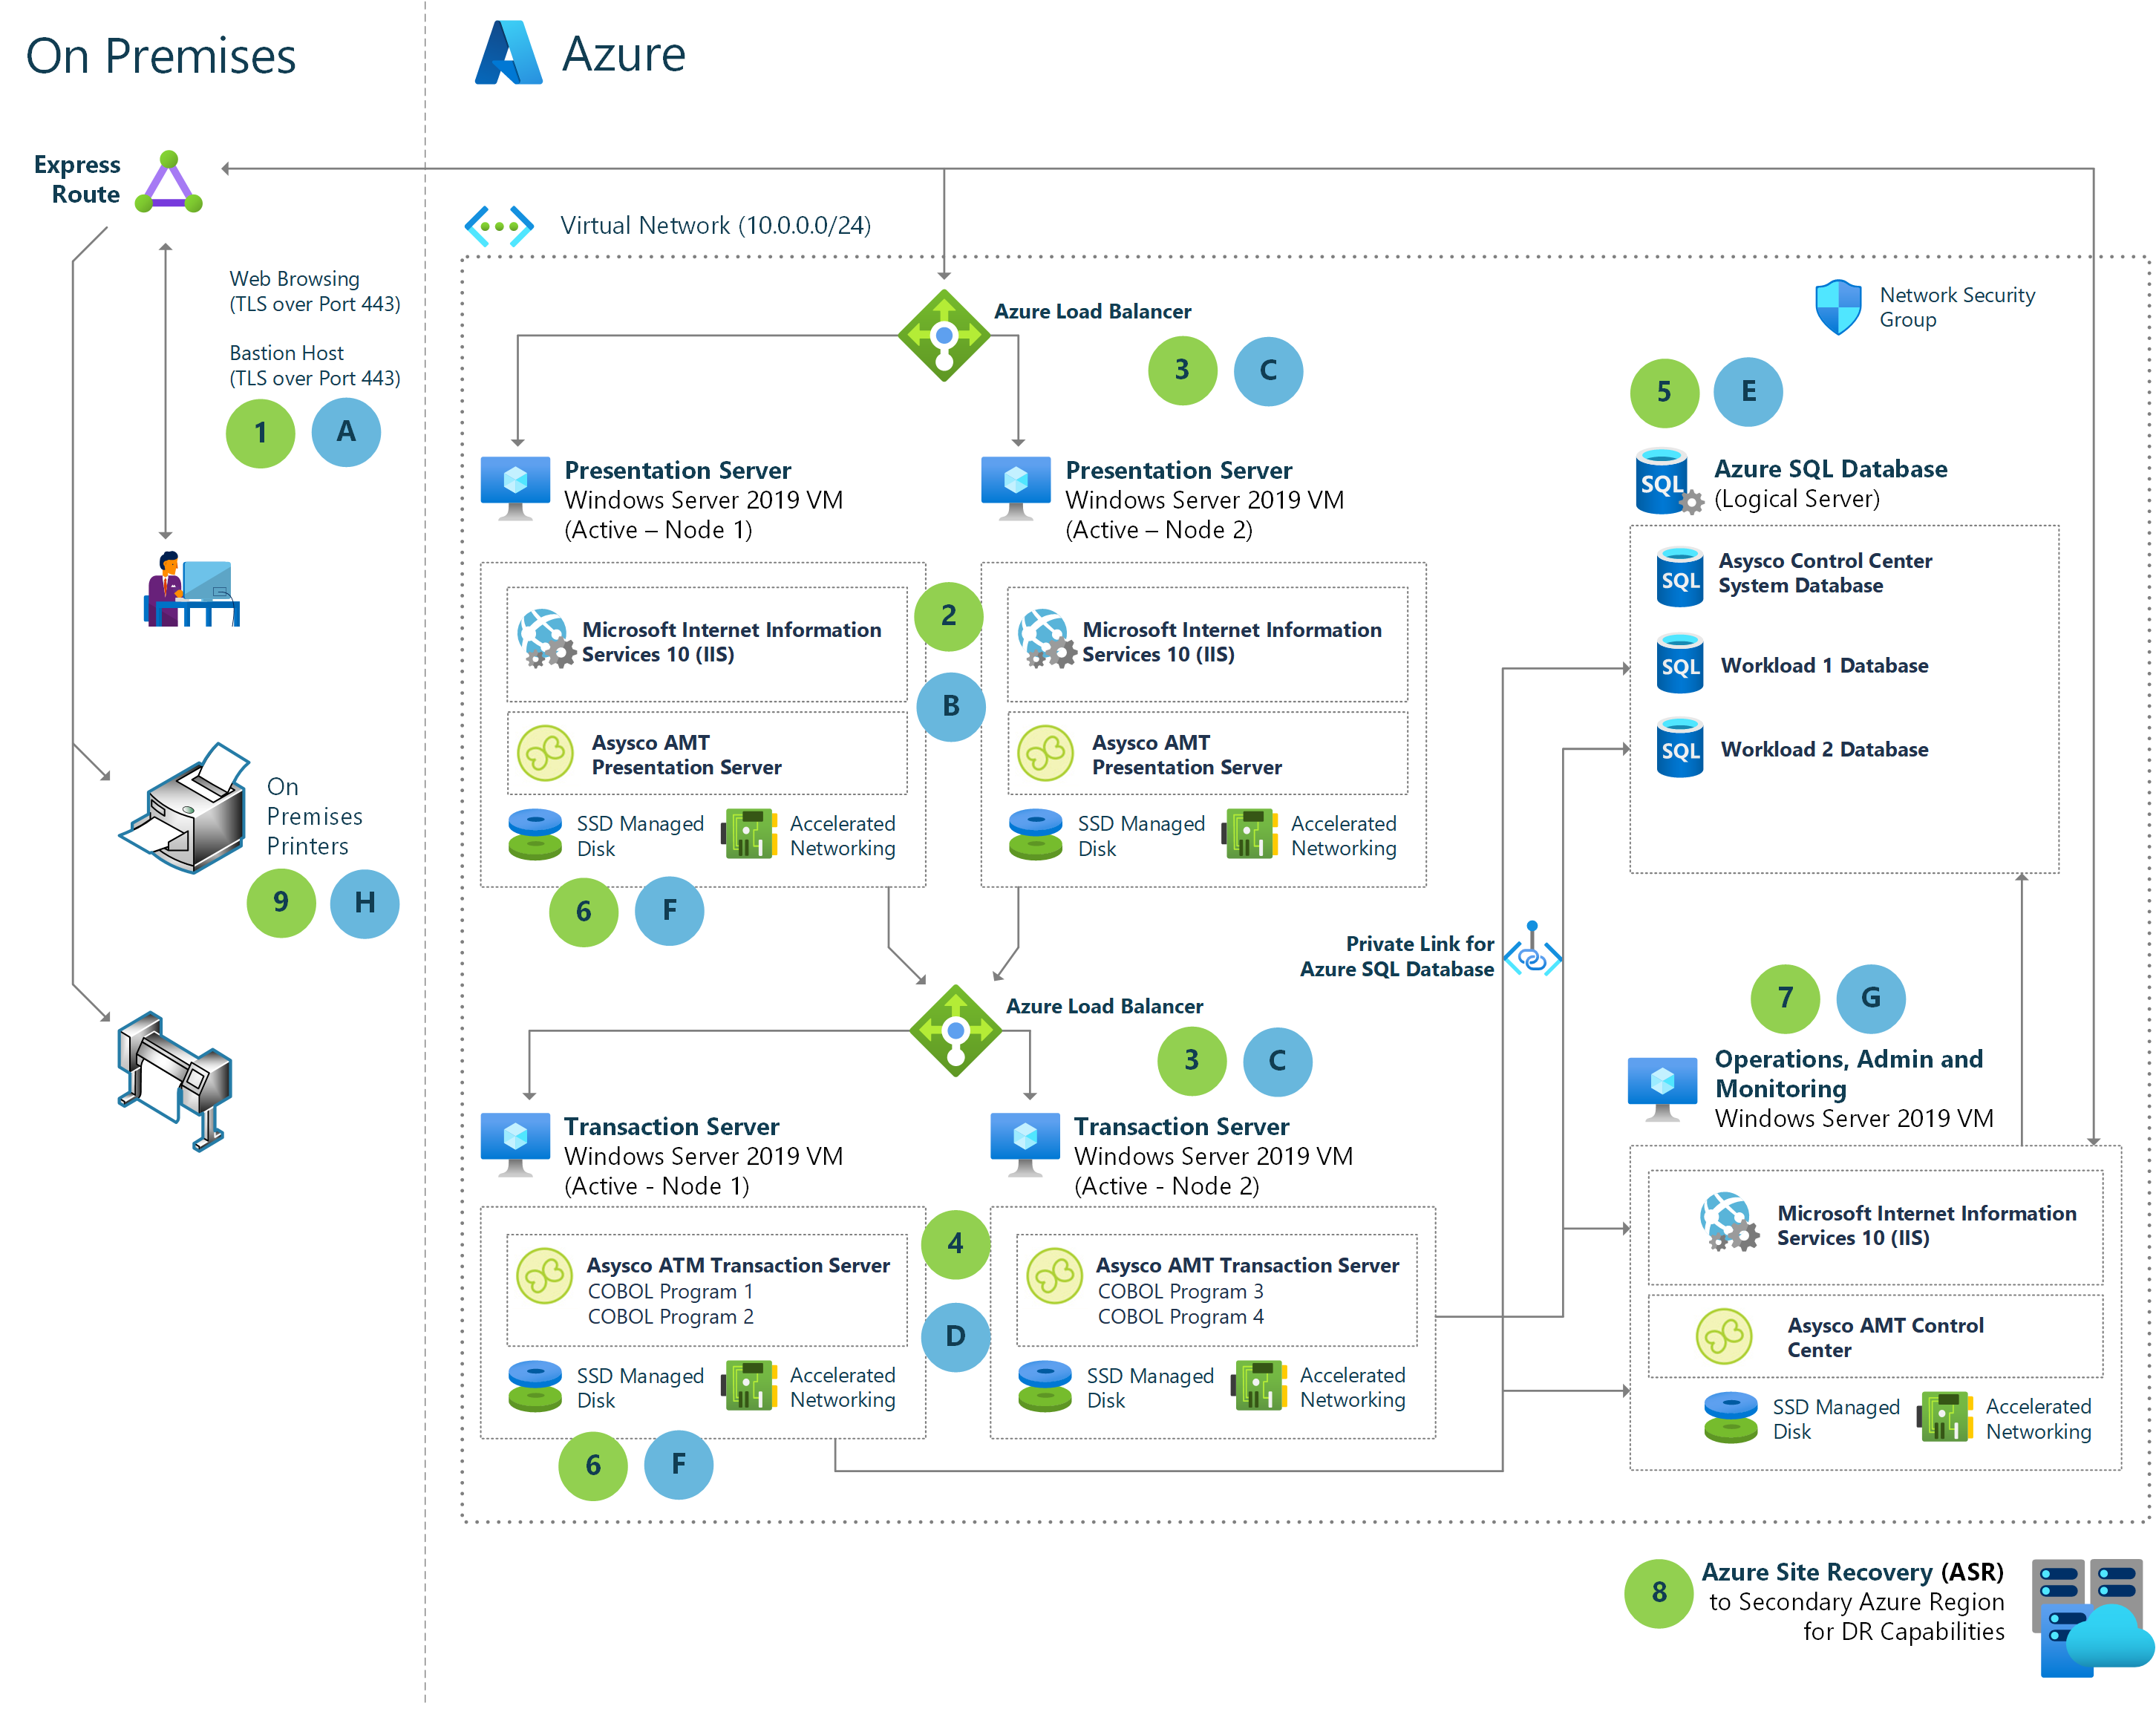 Diagram showing how Unisys mainframe components can map to Azure capabilities.